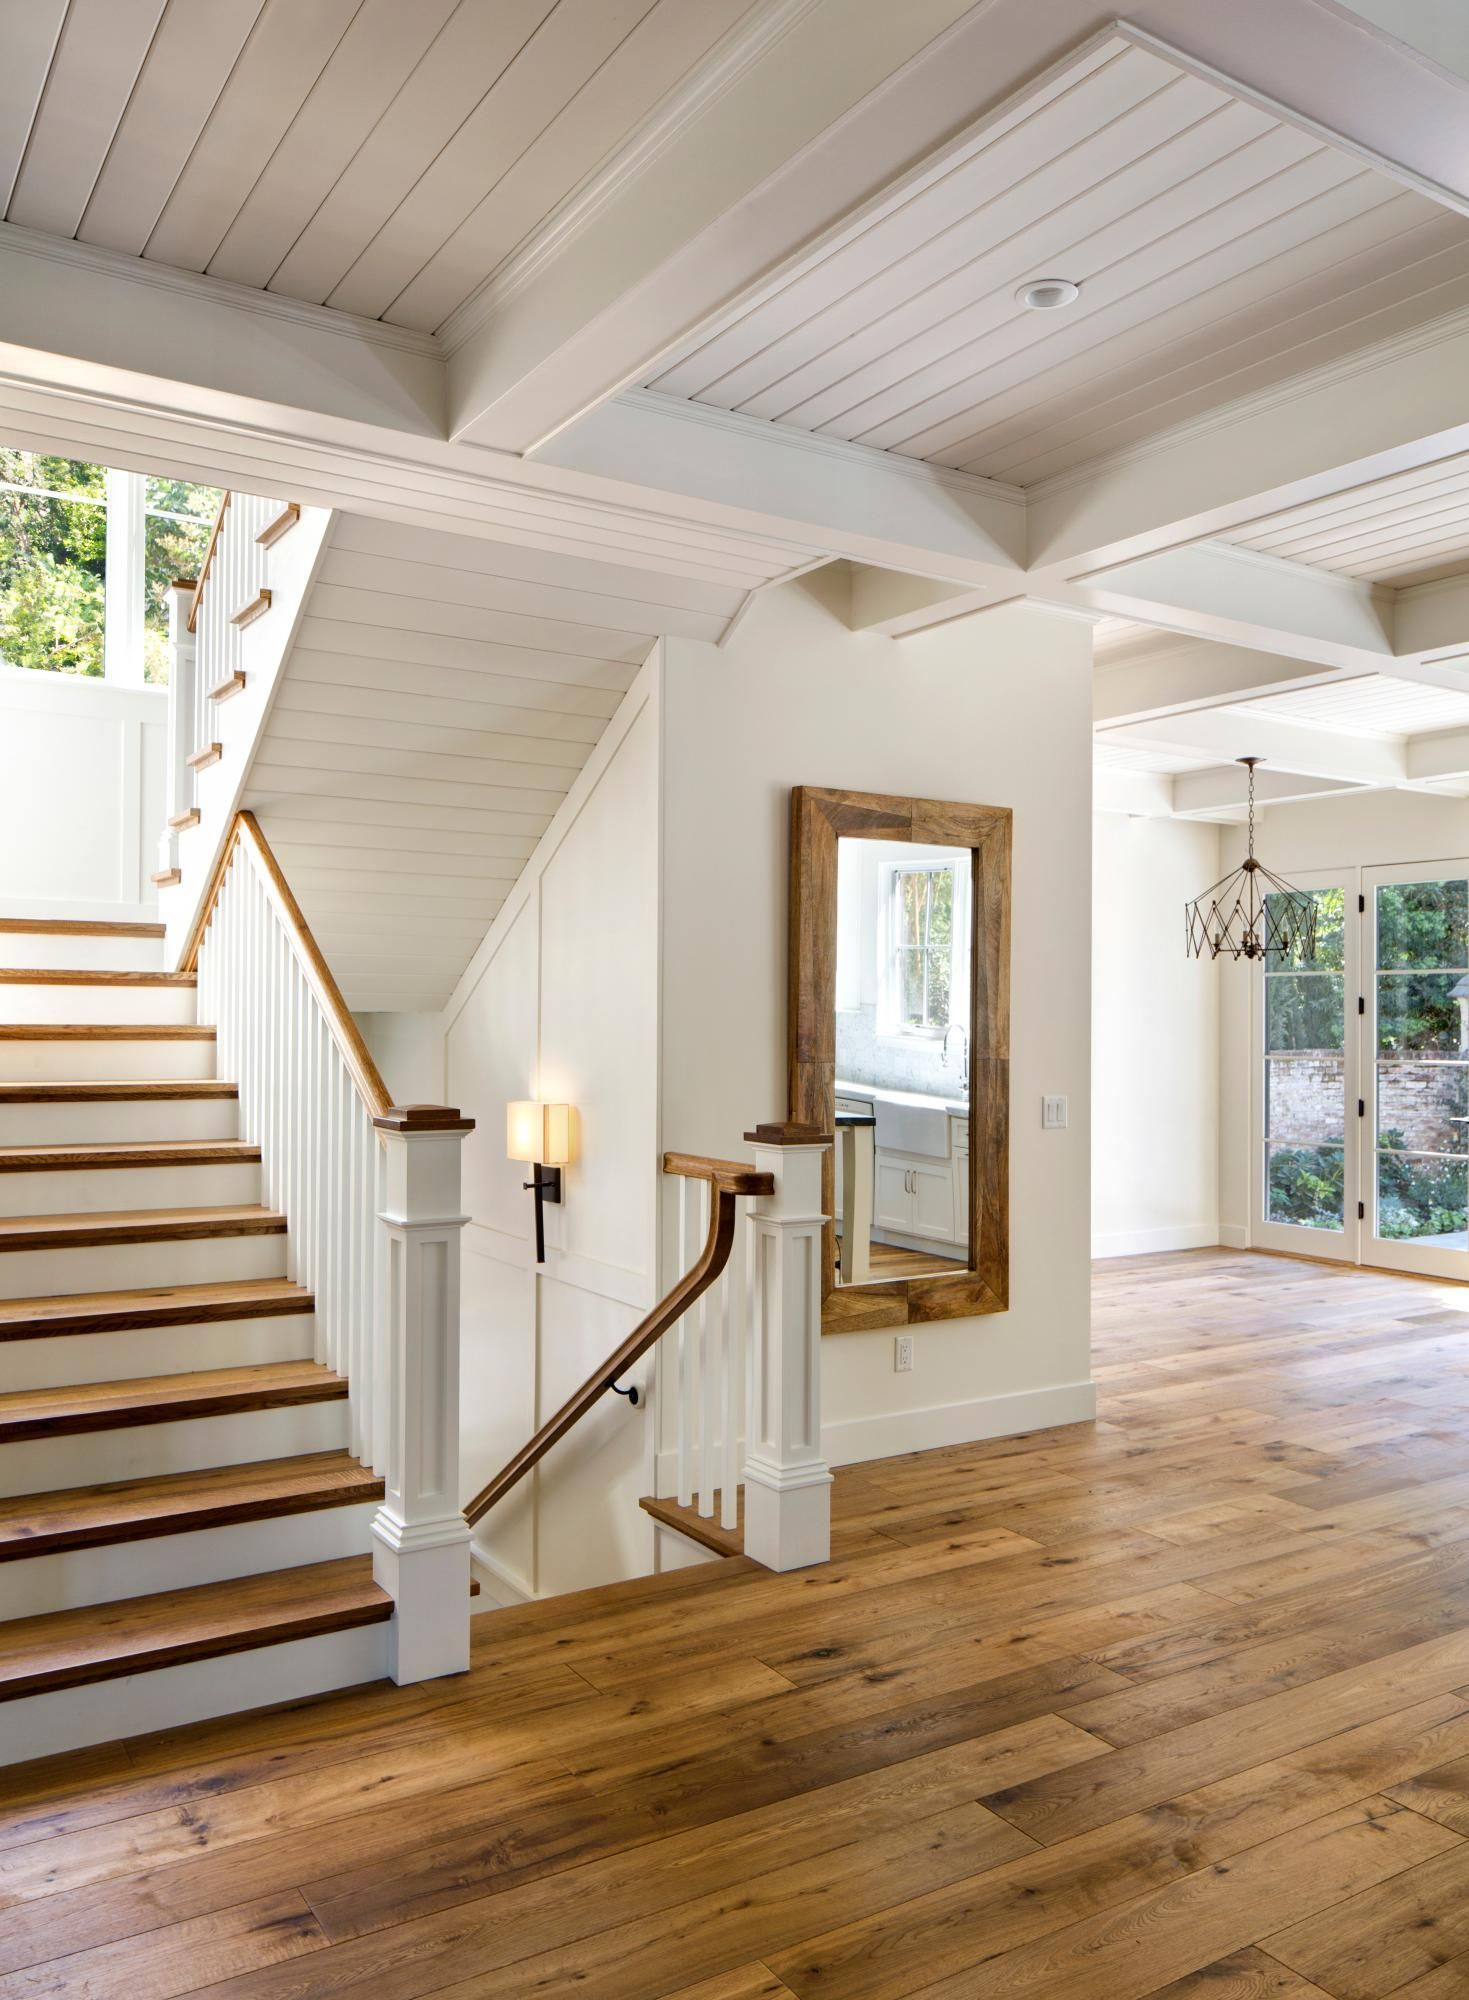 Natural Wood With Cottage White Walls White Railing Love The Floors And The Stairs House Home White Walls